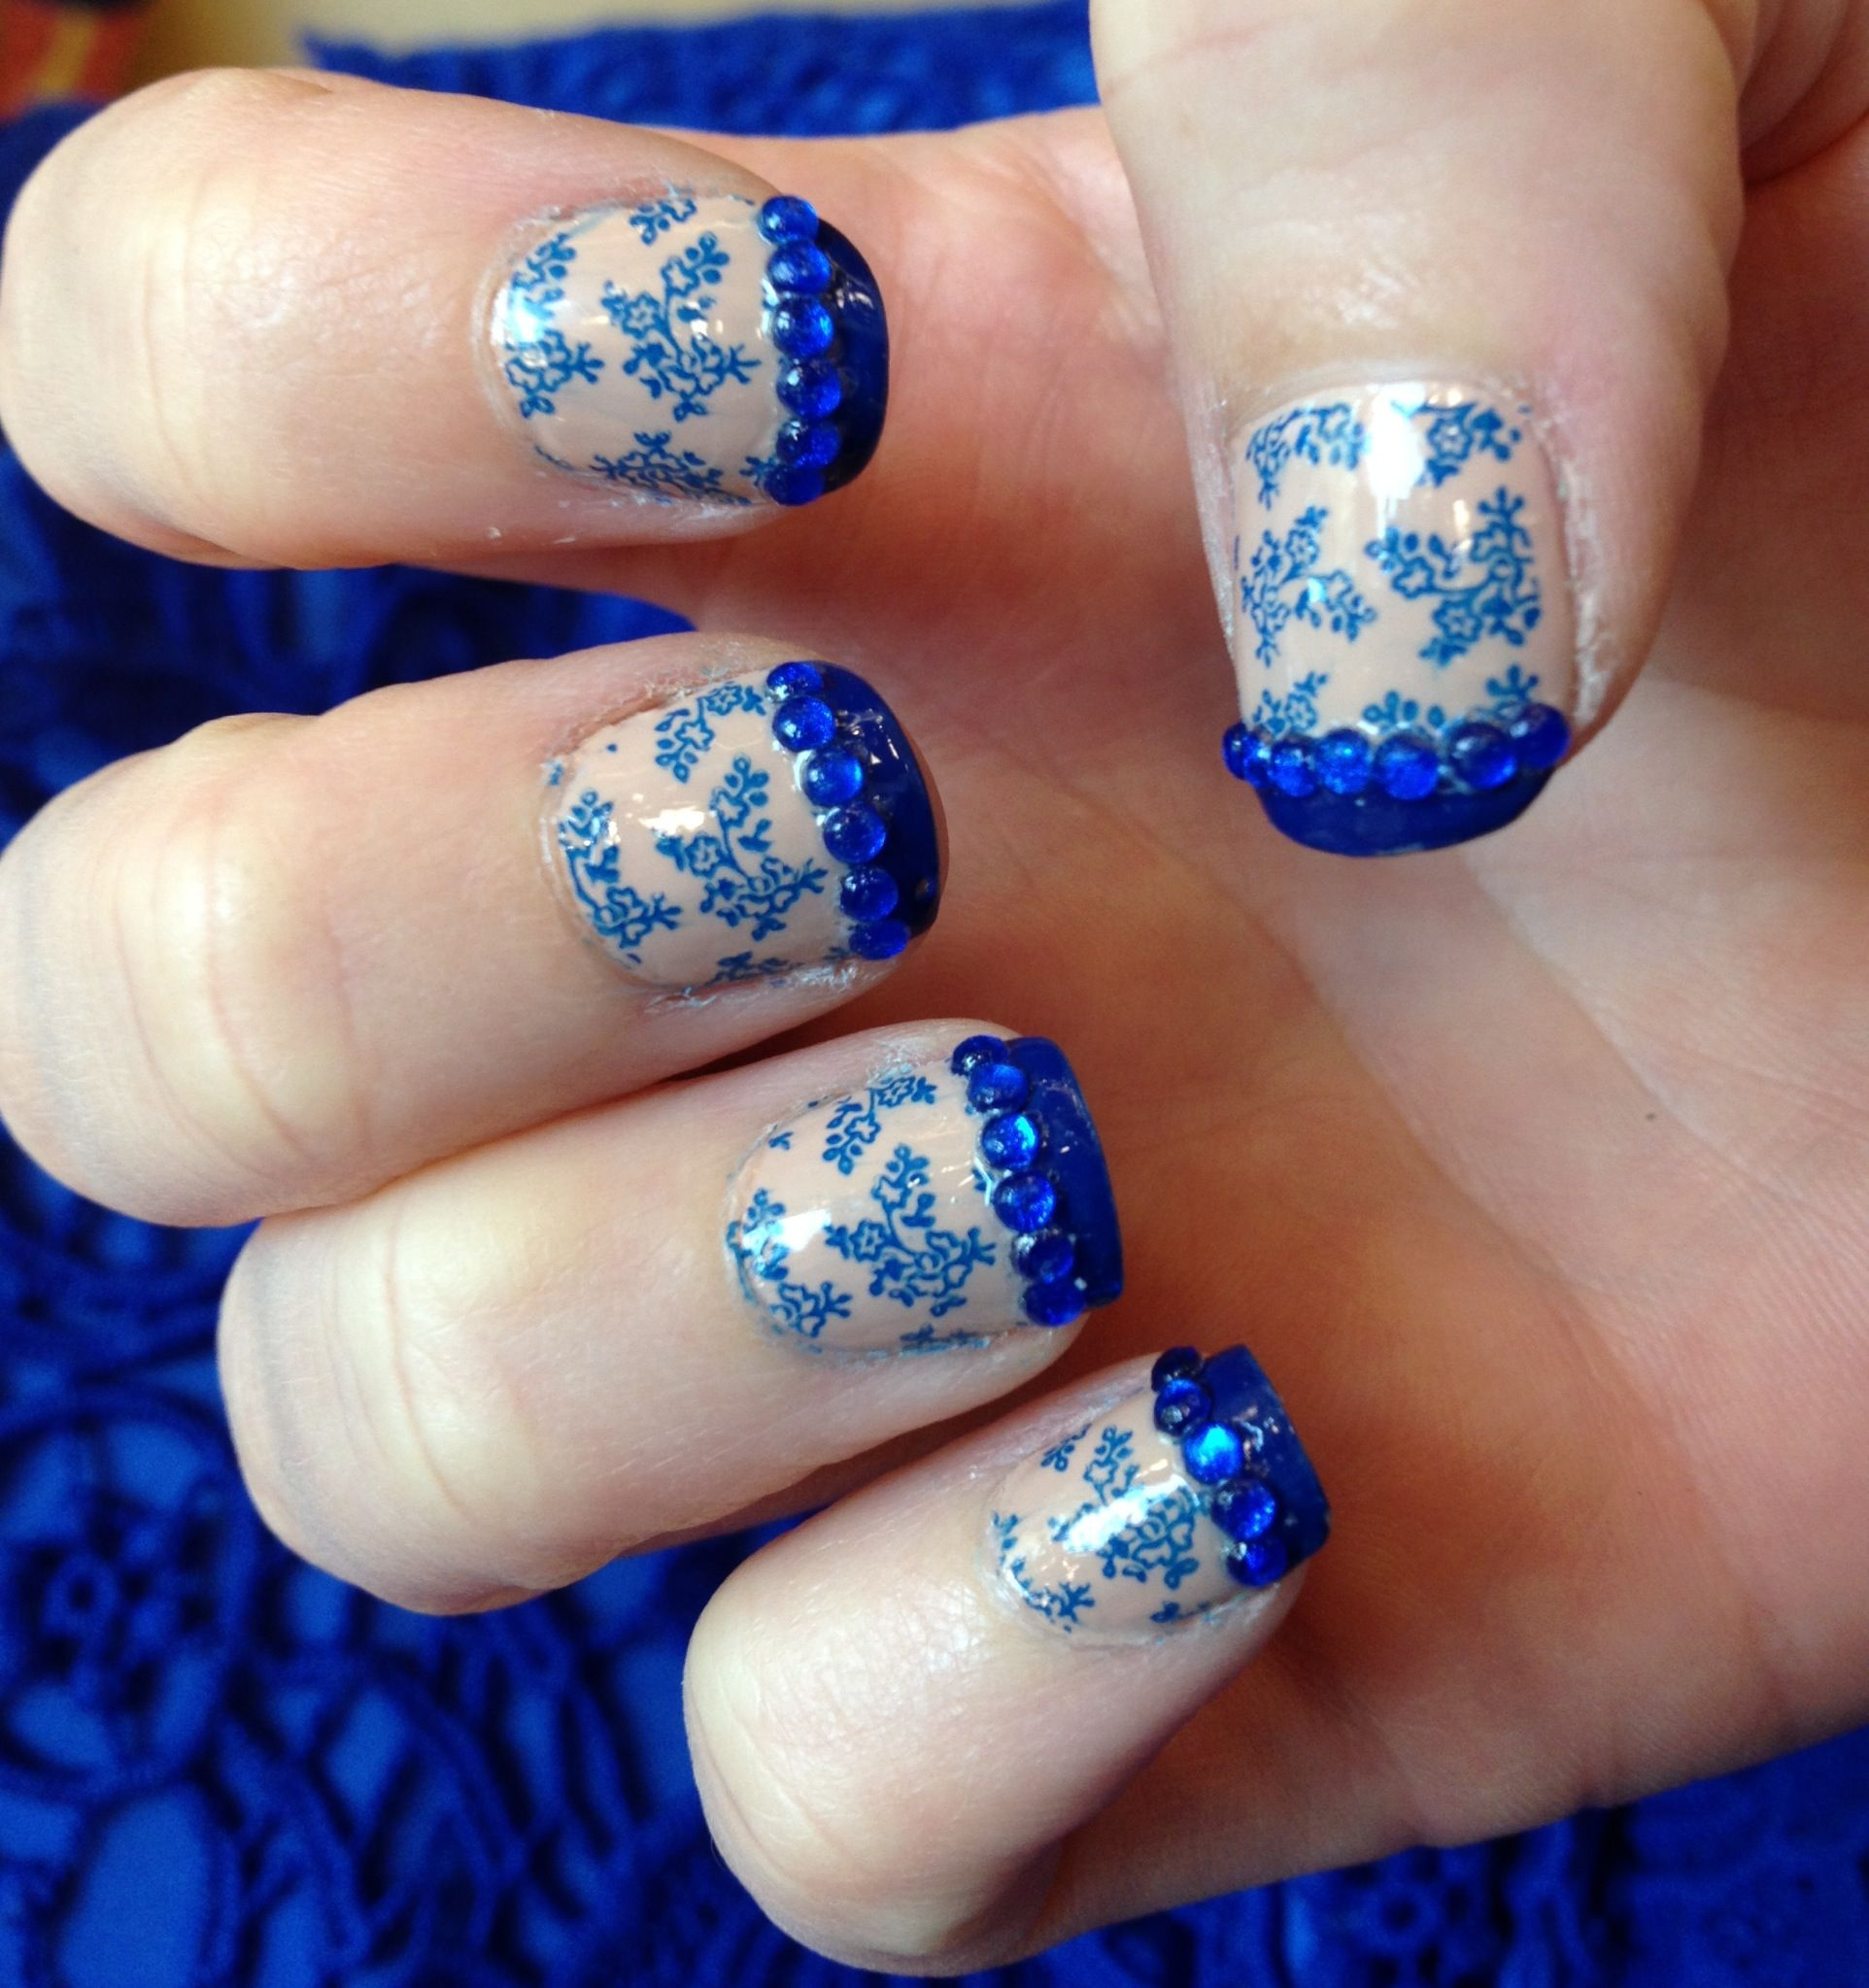 Nail pictures with a lace dress